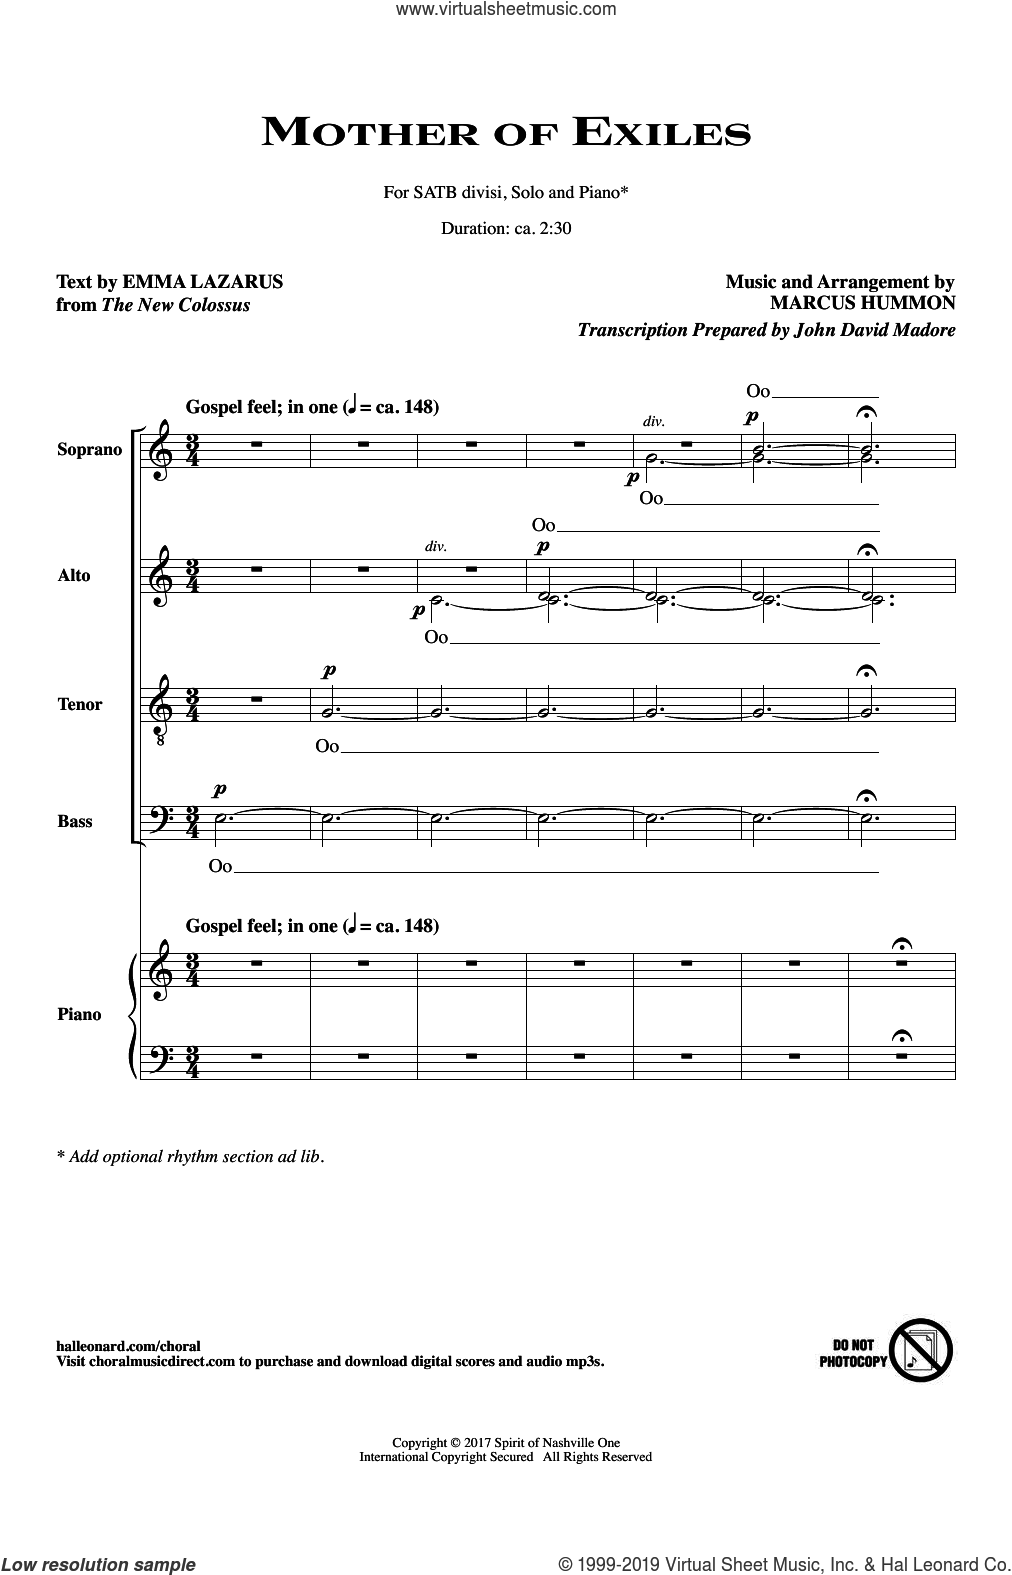 Mother Of Exiles sheet music for choir by Emma Lazarus & Marcus Hummon, Emma Lazarus and Marcus Hummon, intermediate skill level